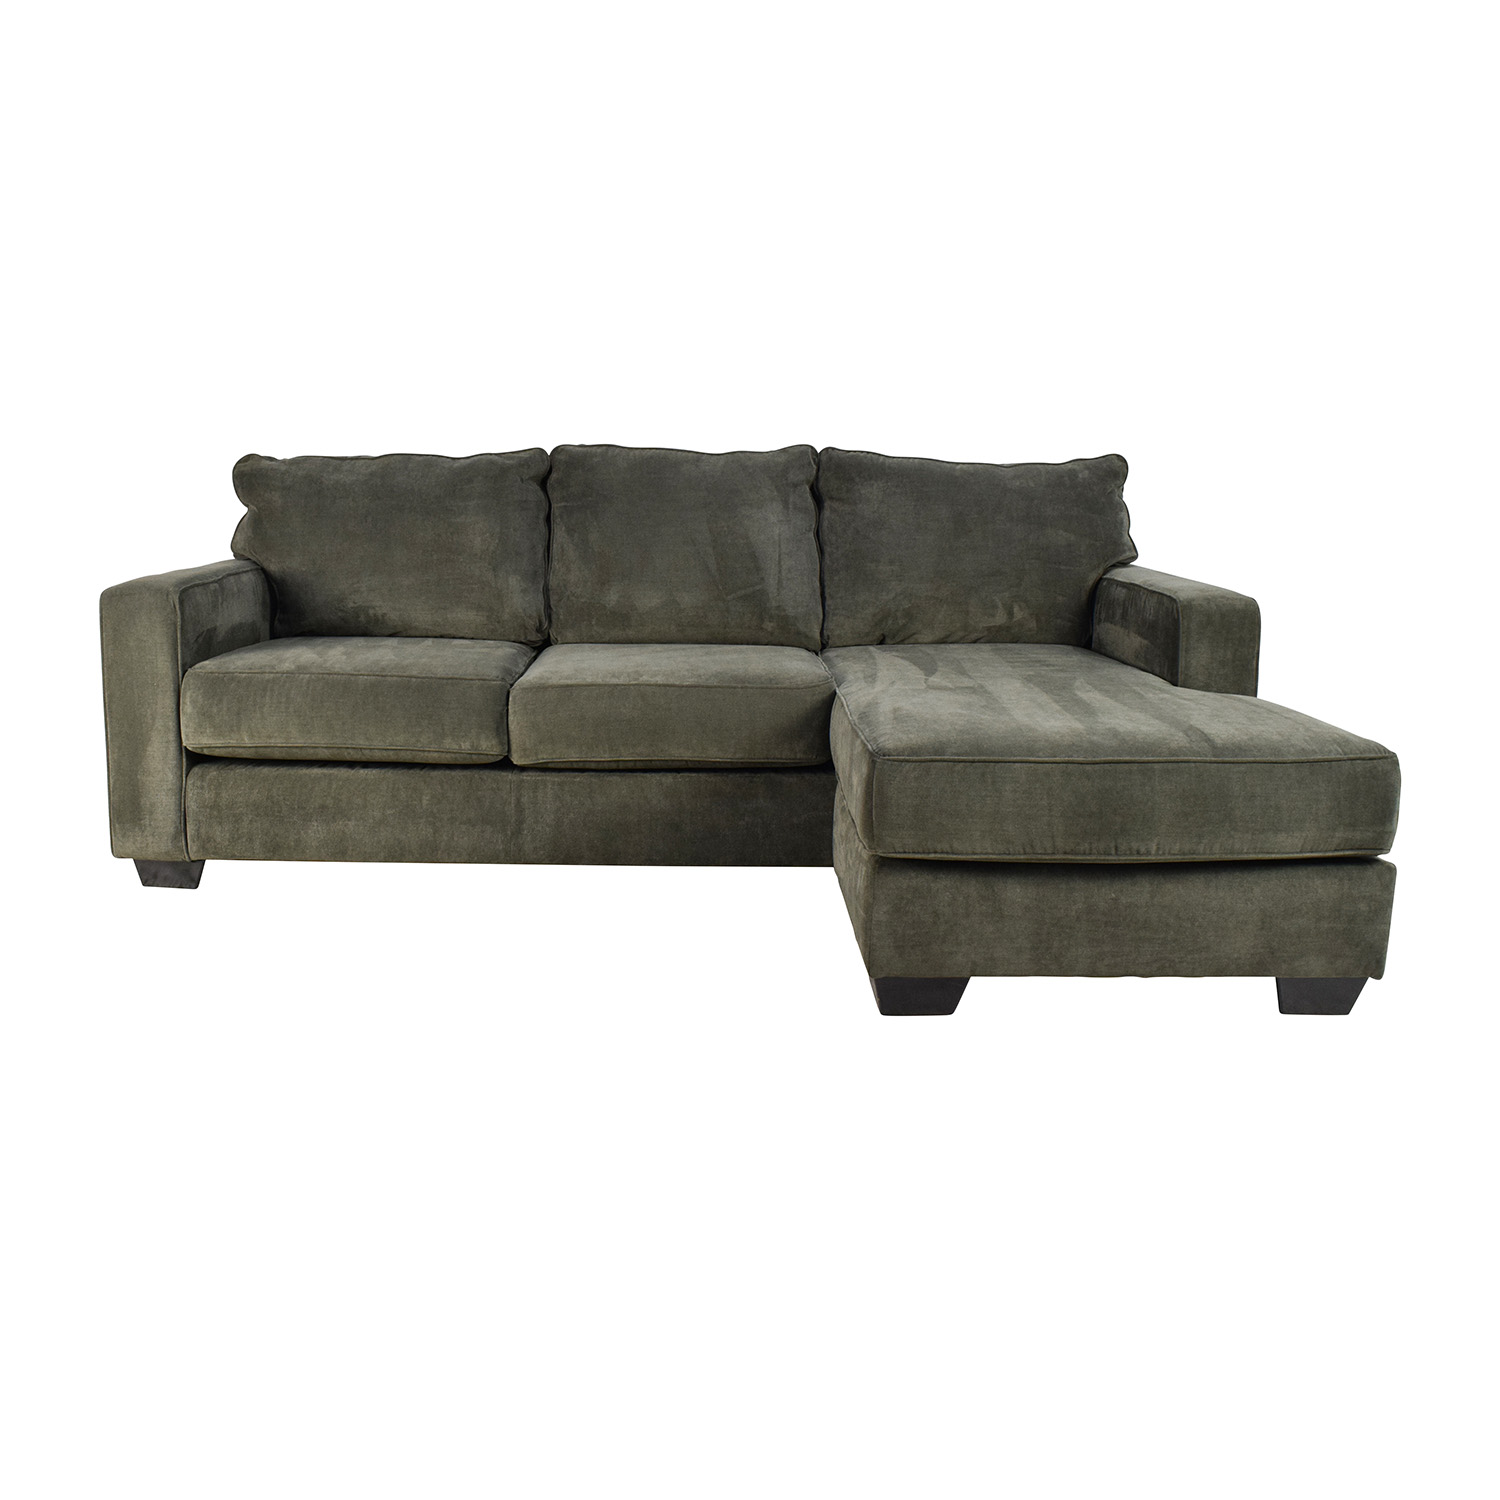 corner sofa under 500 chaise grey amazing jennifer convertibles sleeper sectional sofas